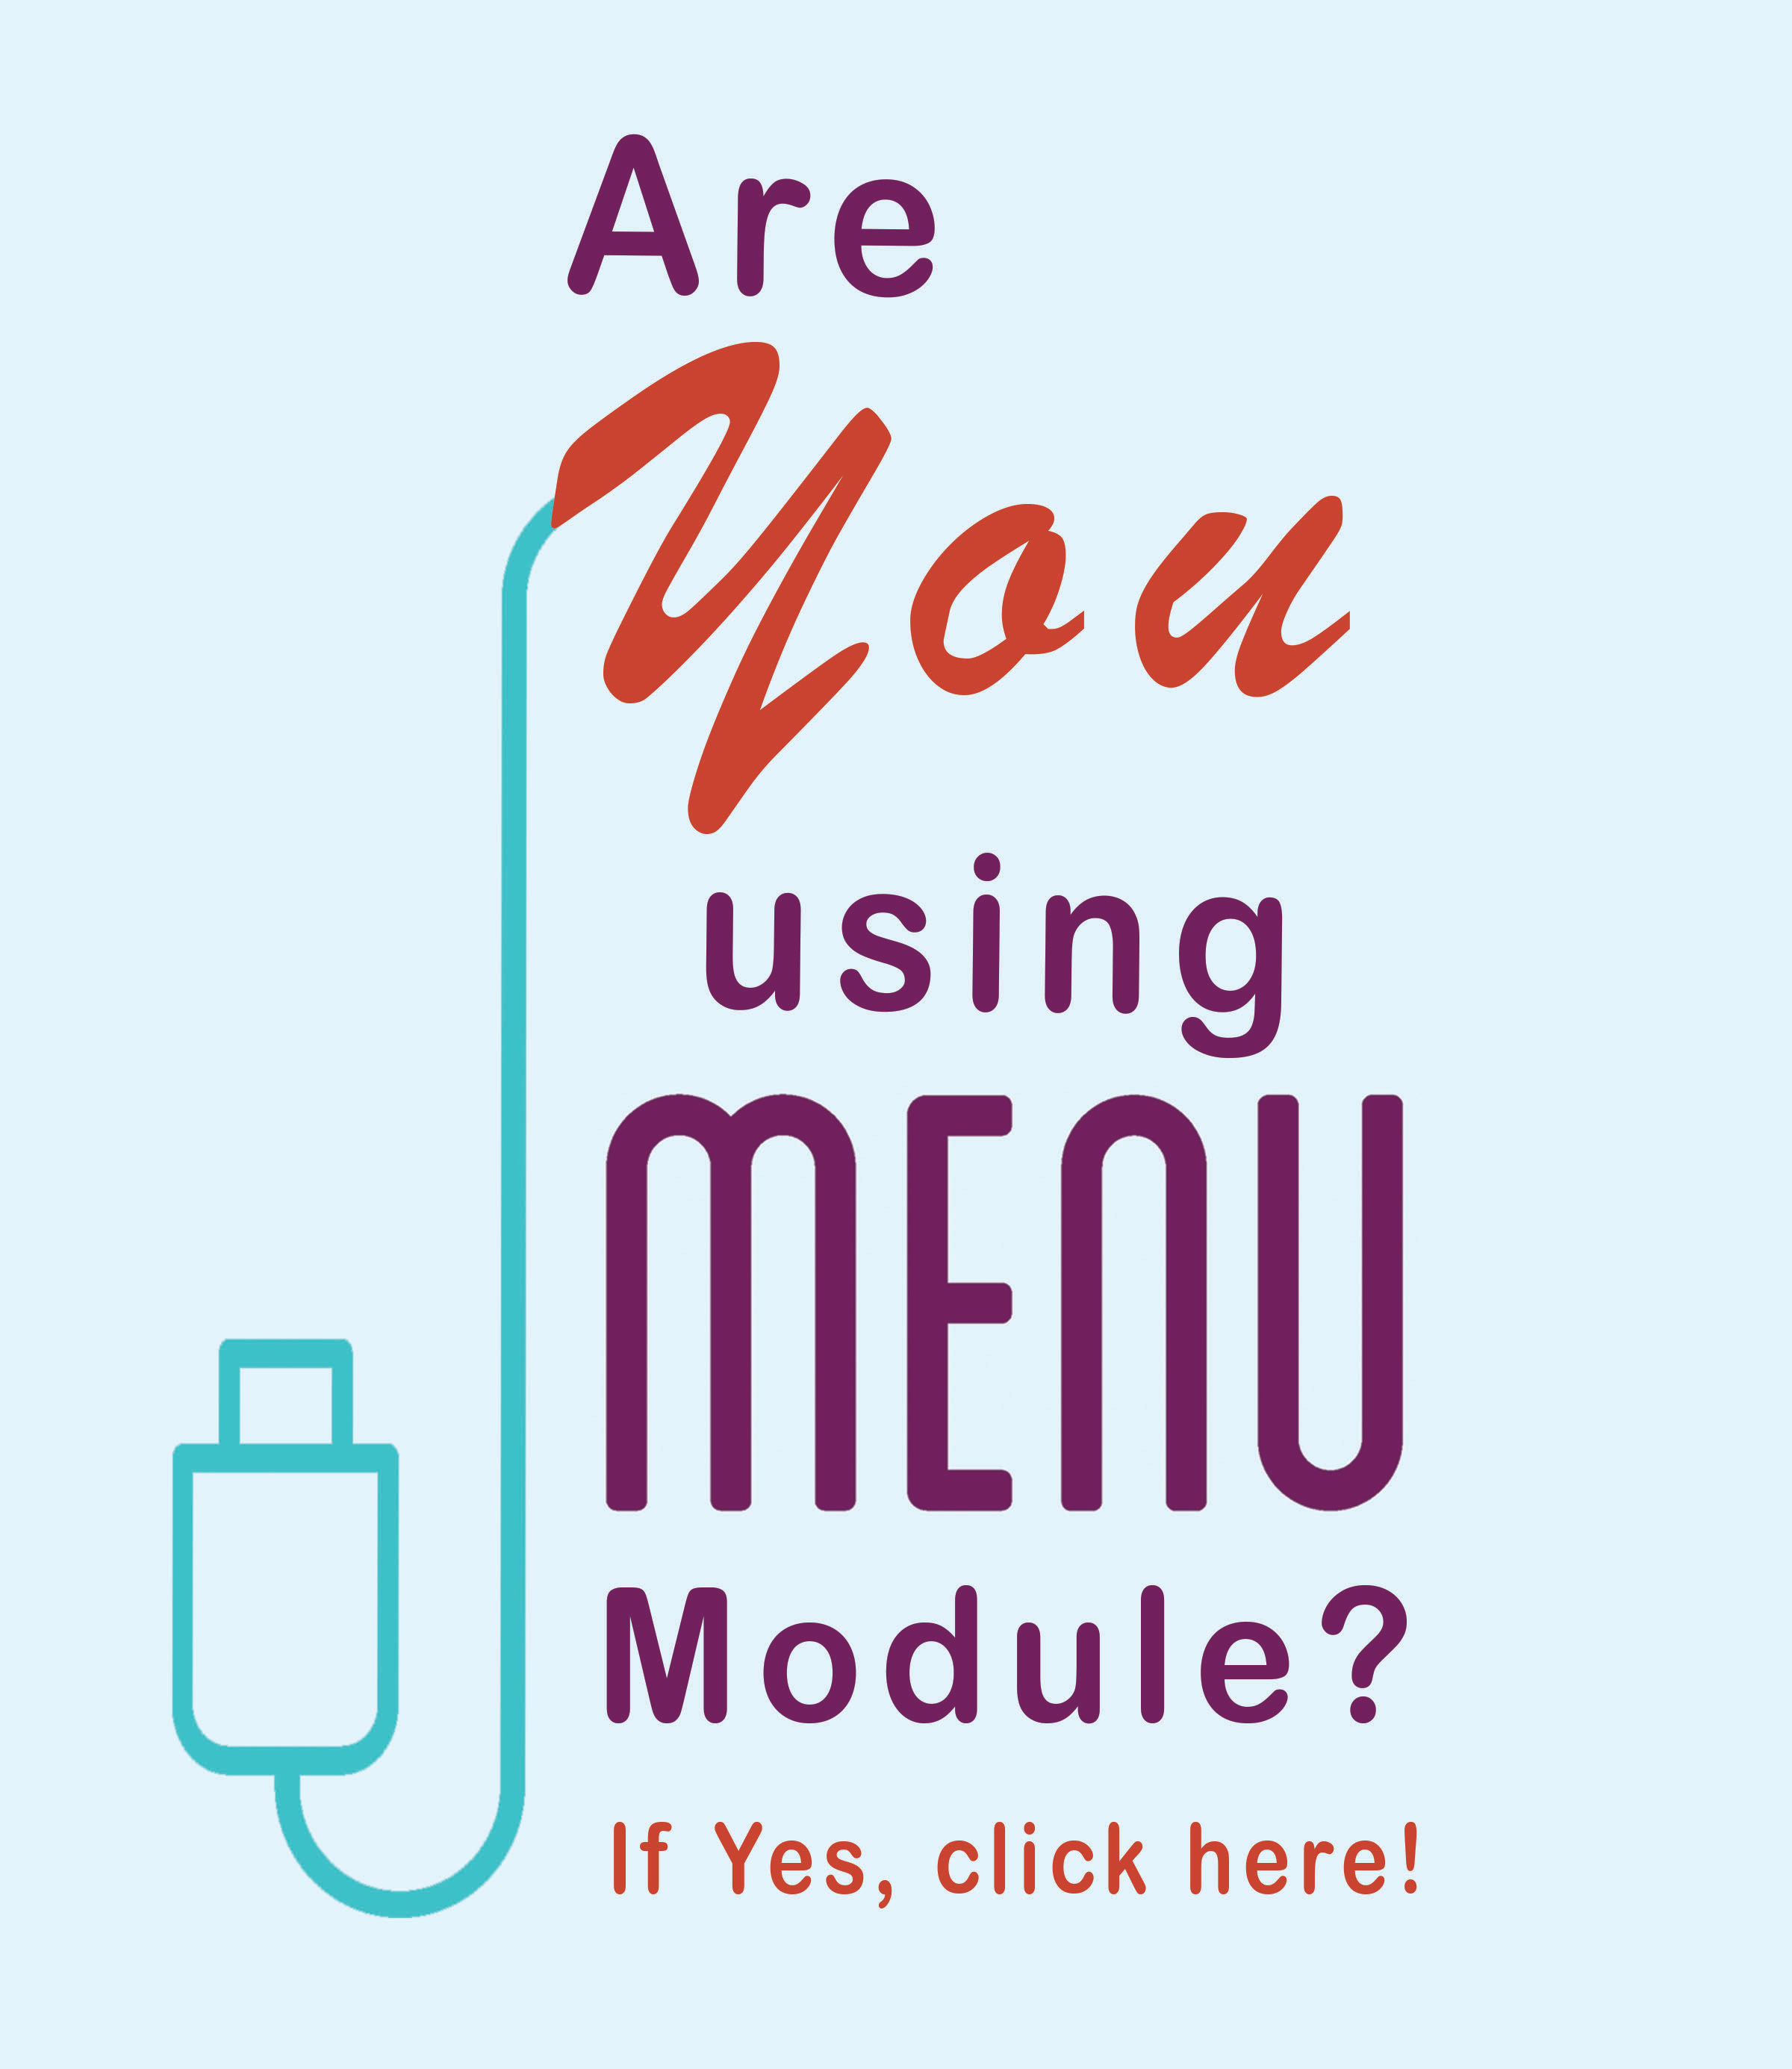 Survey: Are You Using MENU Module?